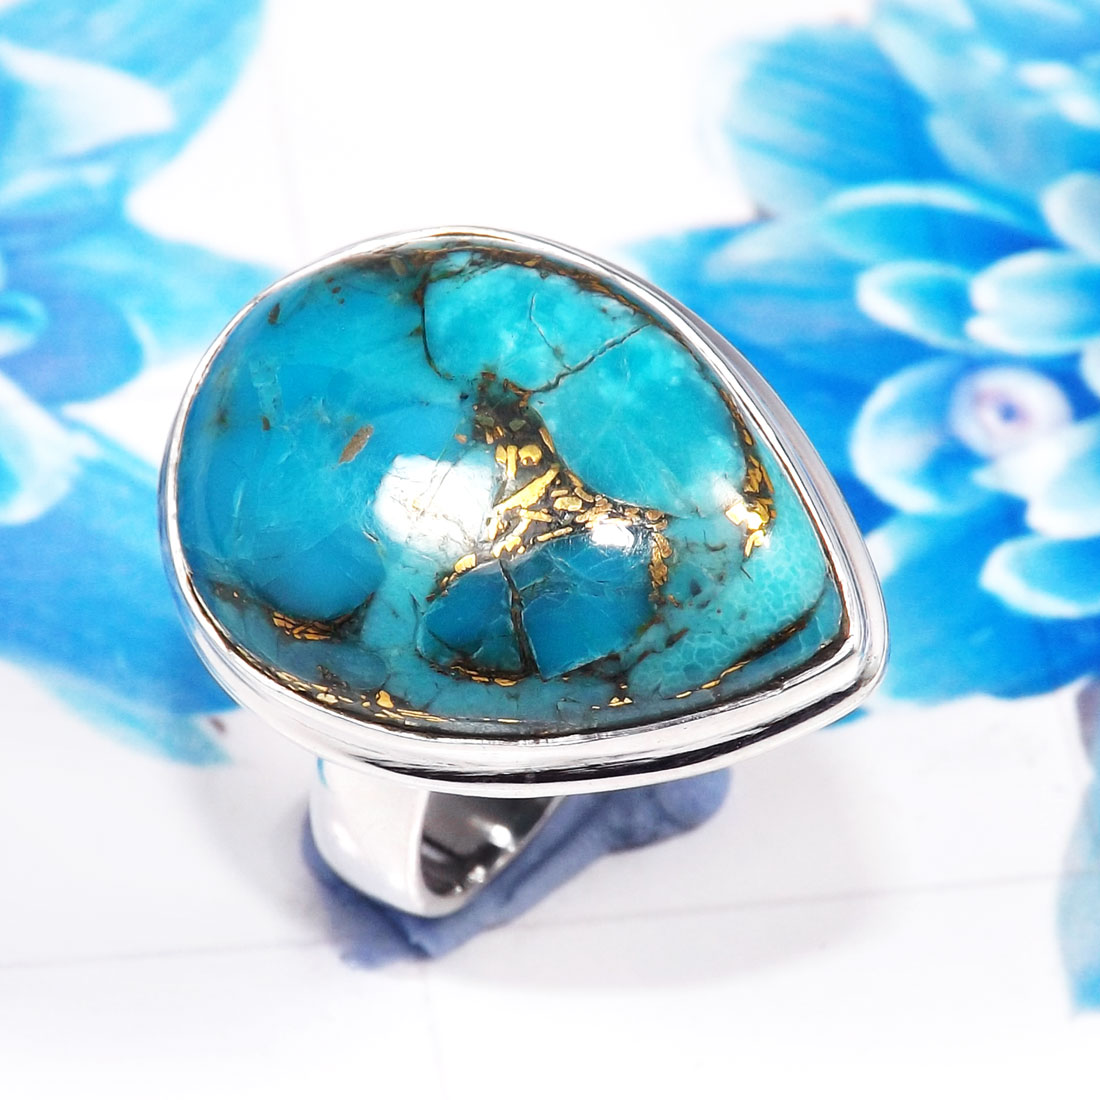 rings online bradbury turquoise from sabo thomas ring uk image stone s